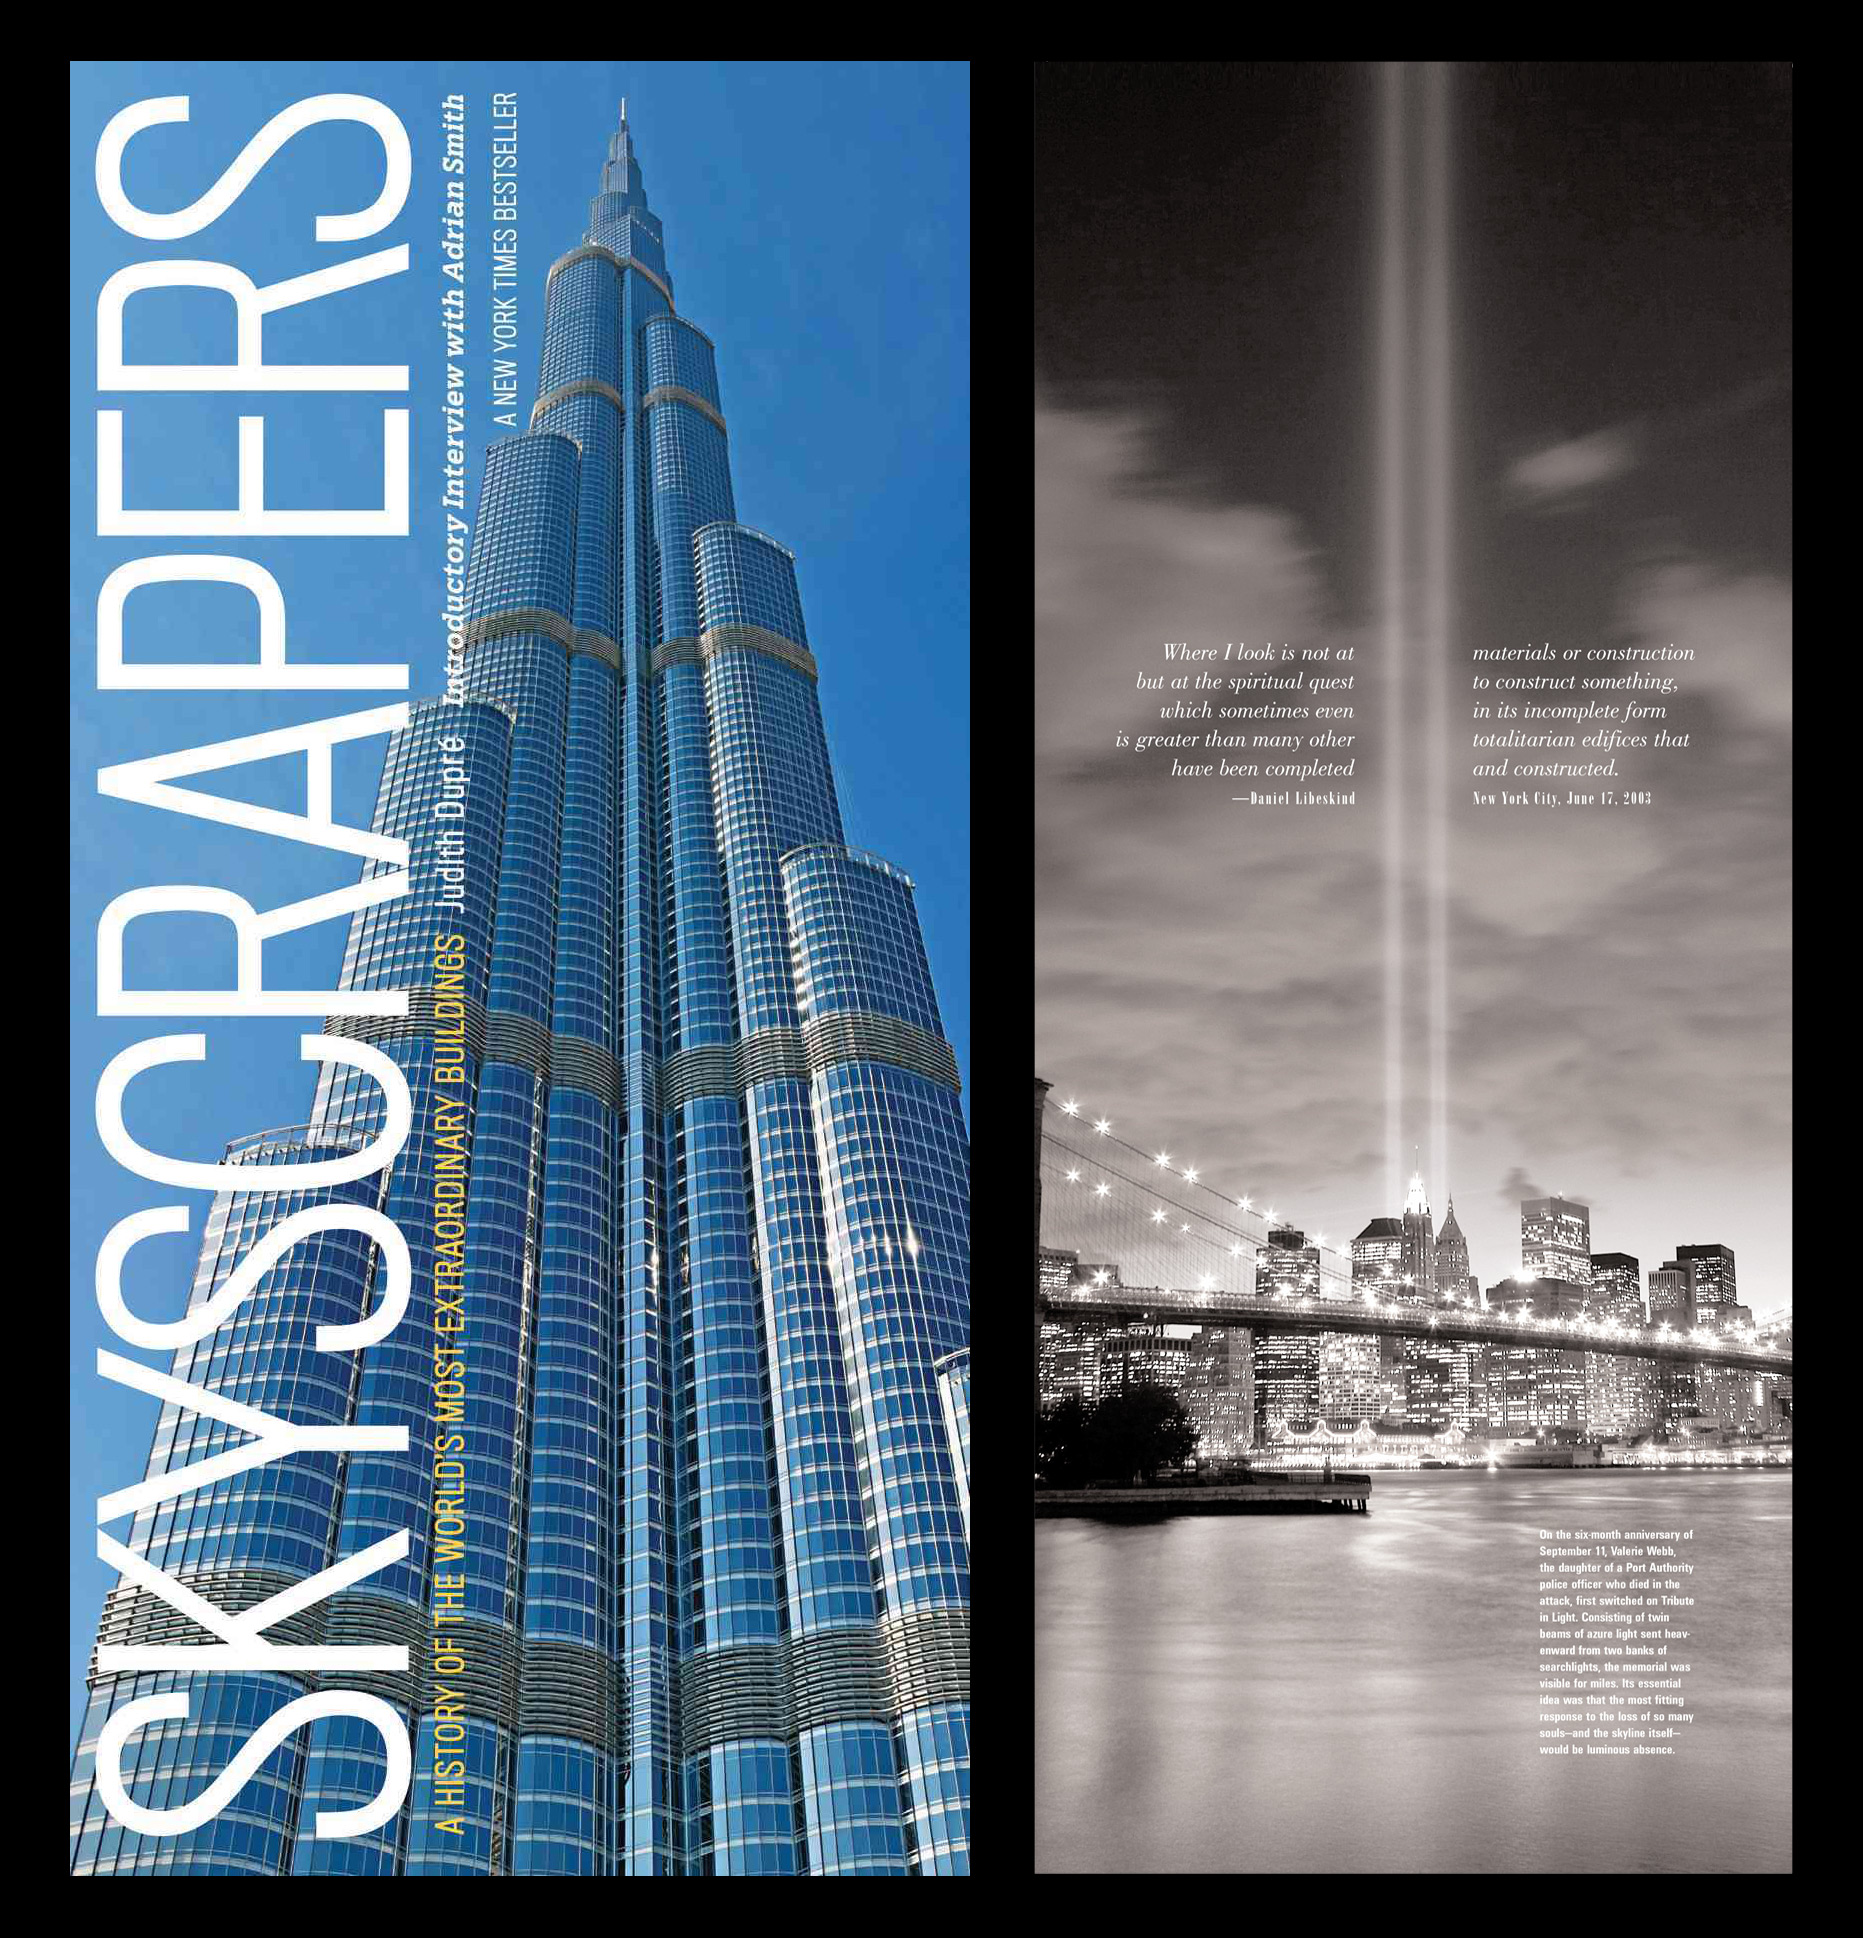 Skyscrapers: A History of the World's Most Extraordinary Buildings . By Judith Dupre. Full page photo of the 9/11 Tribute in Light Memorial.